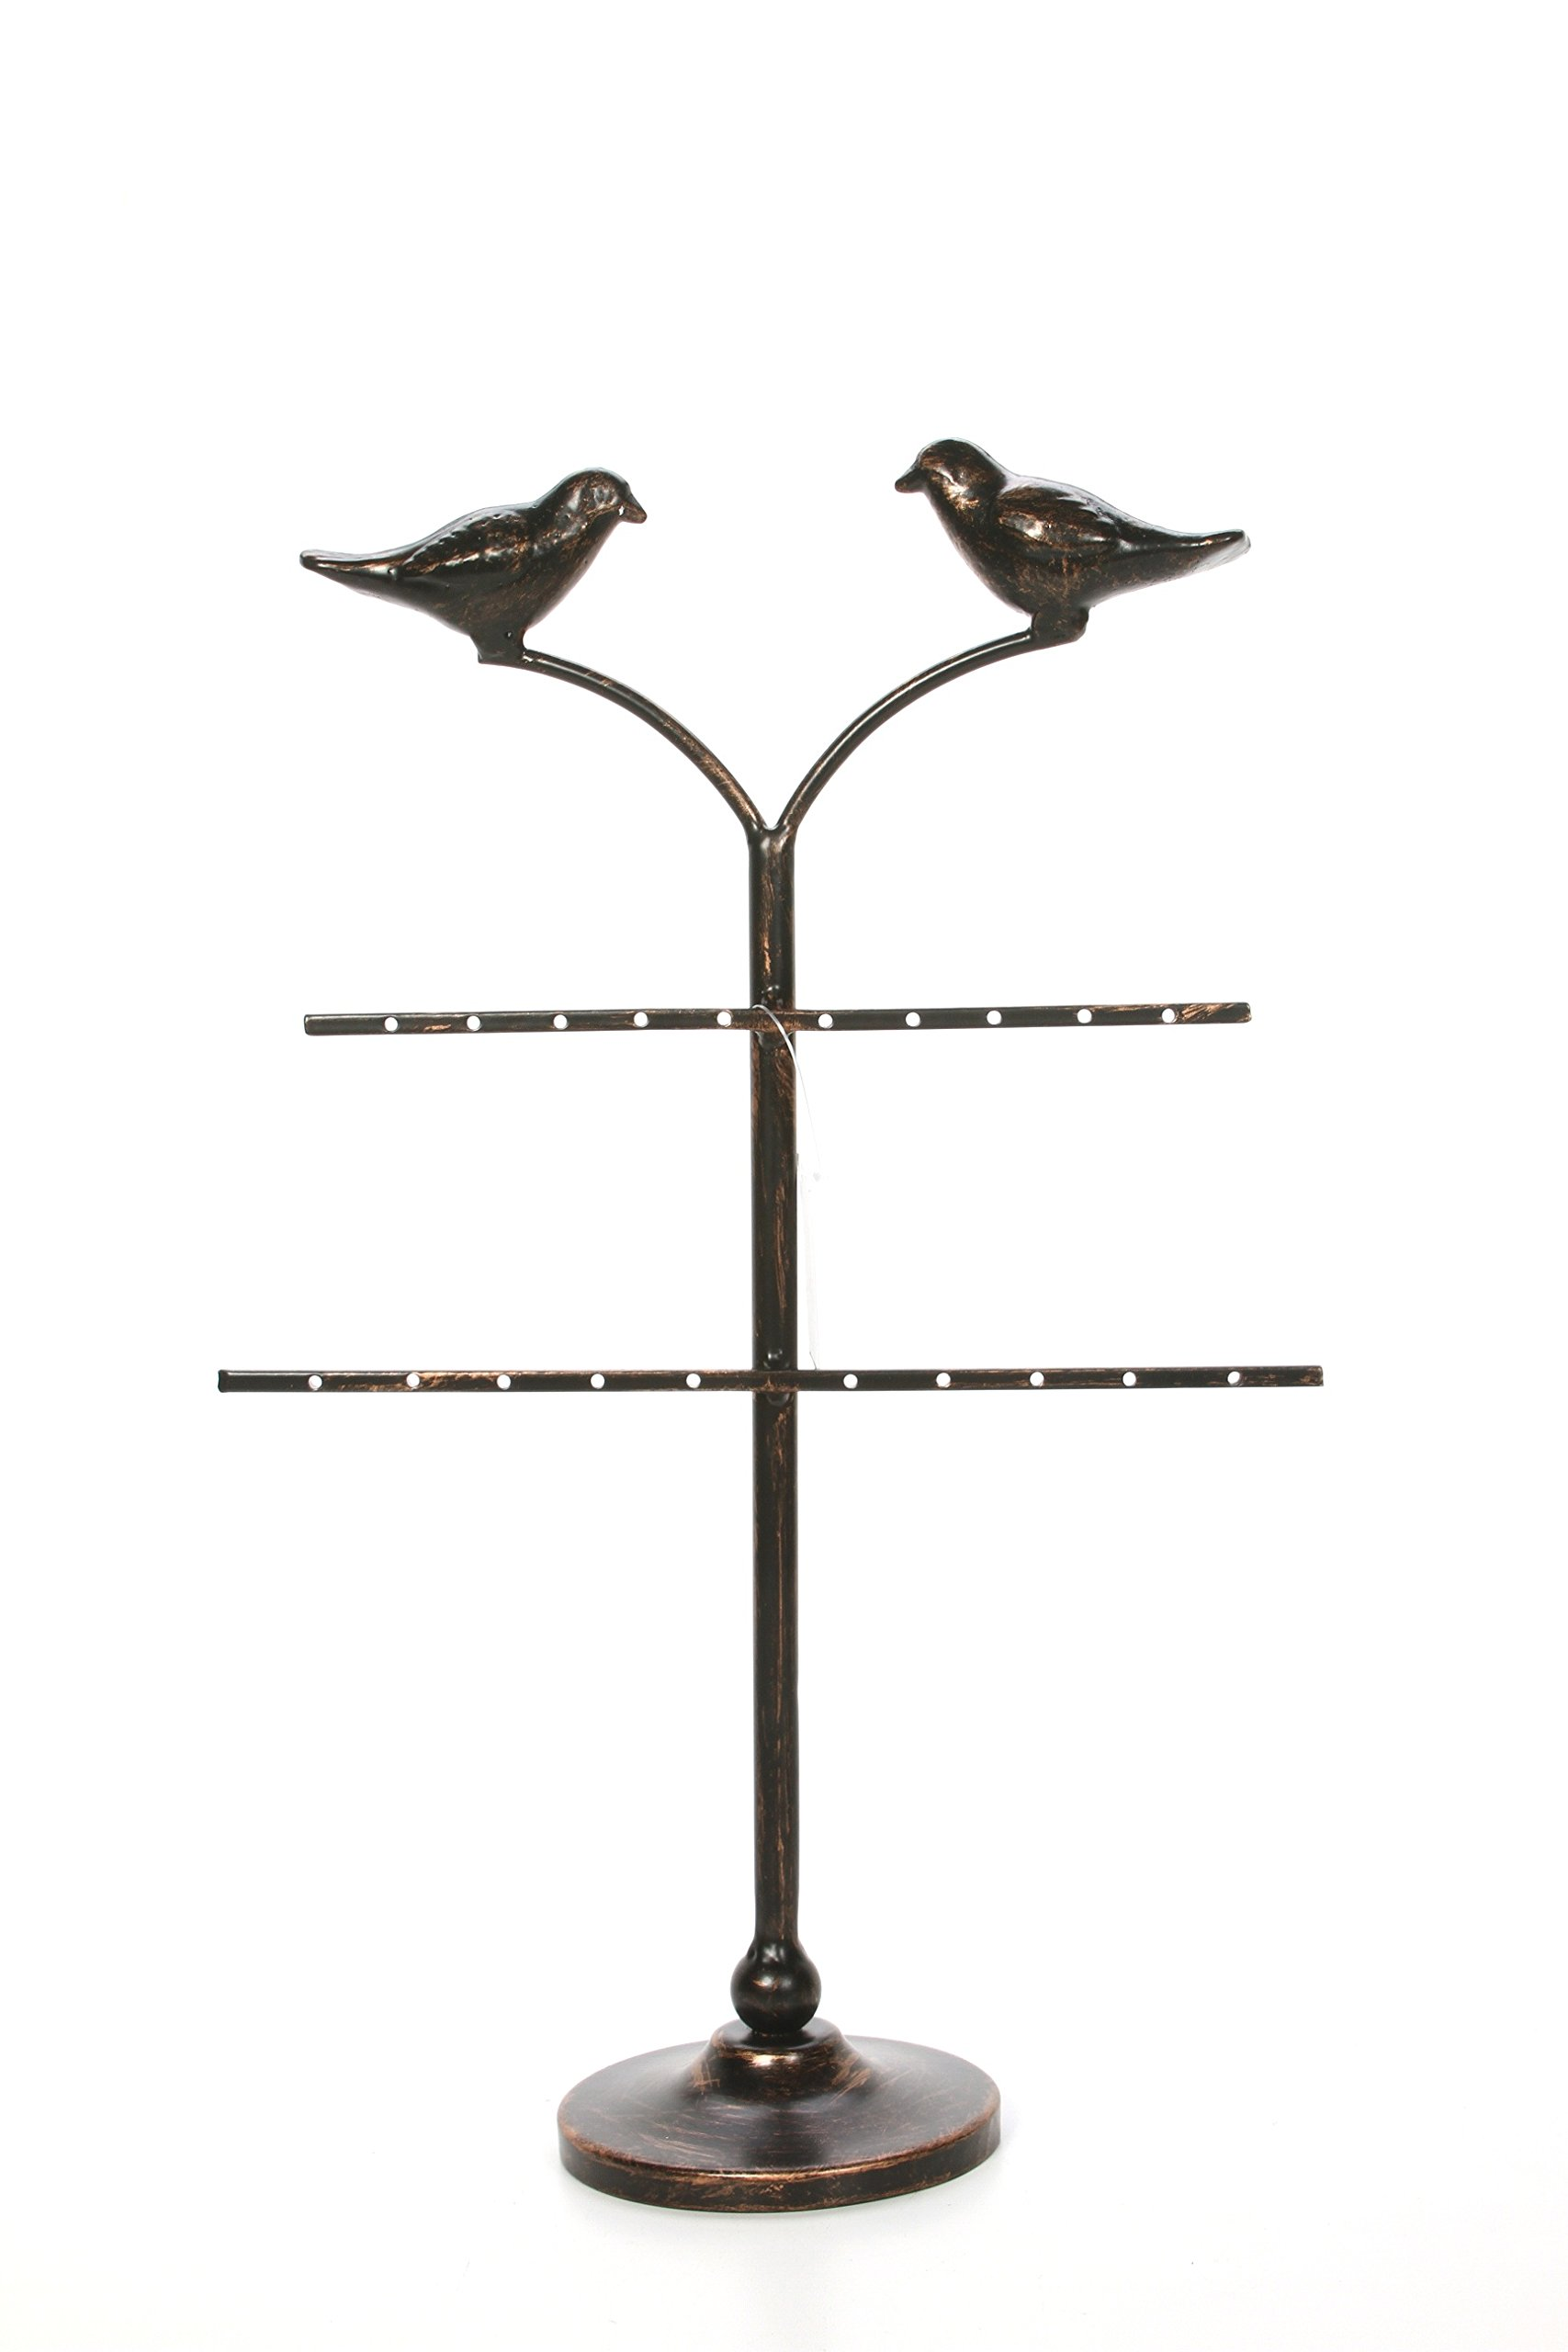 Hosley 20.25'' High, Decorative Tabletop Cardinal Birds Jewelry Chain Ring Knick Knack Stand. Ideal Gift for Wedding, Home, Party Favor, Spa, Reiki, Meditation, Bathroom Settings O9 by Hosley